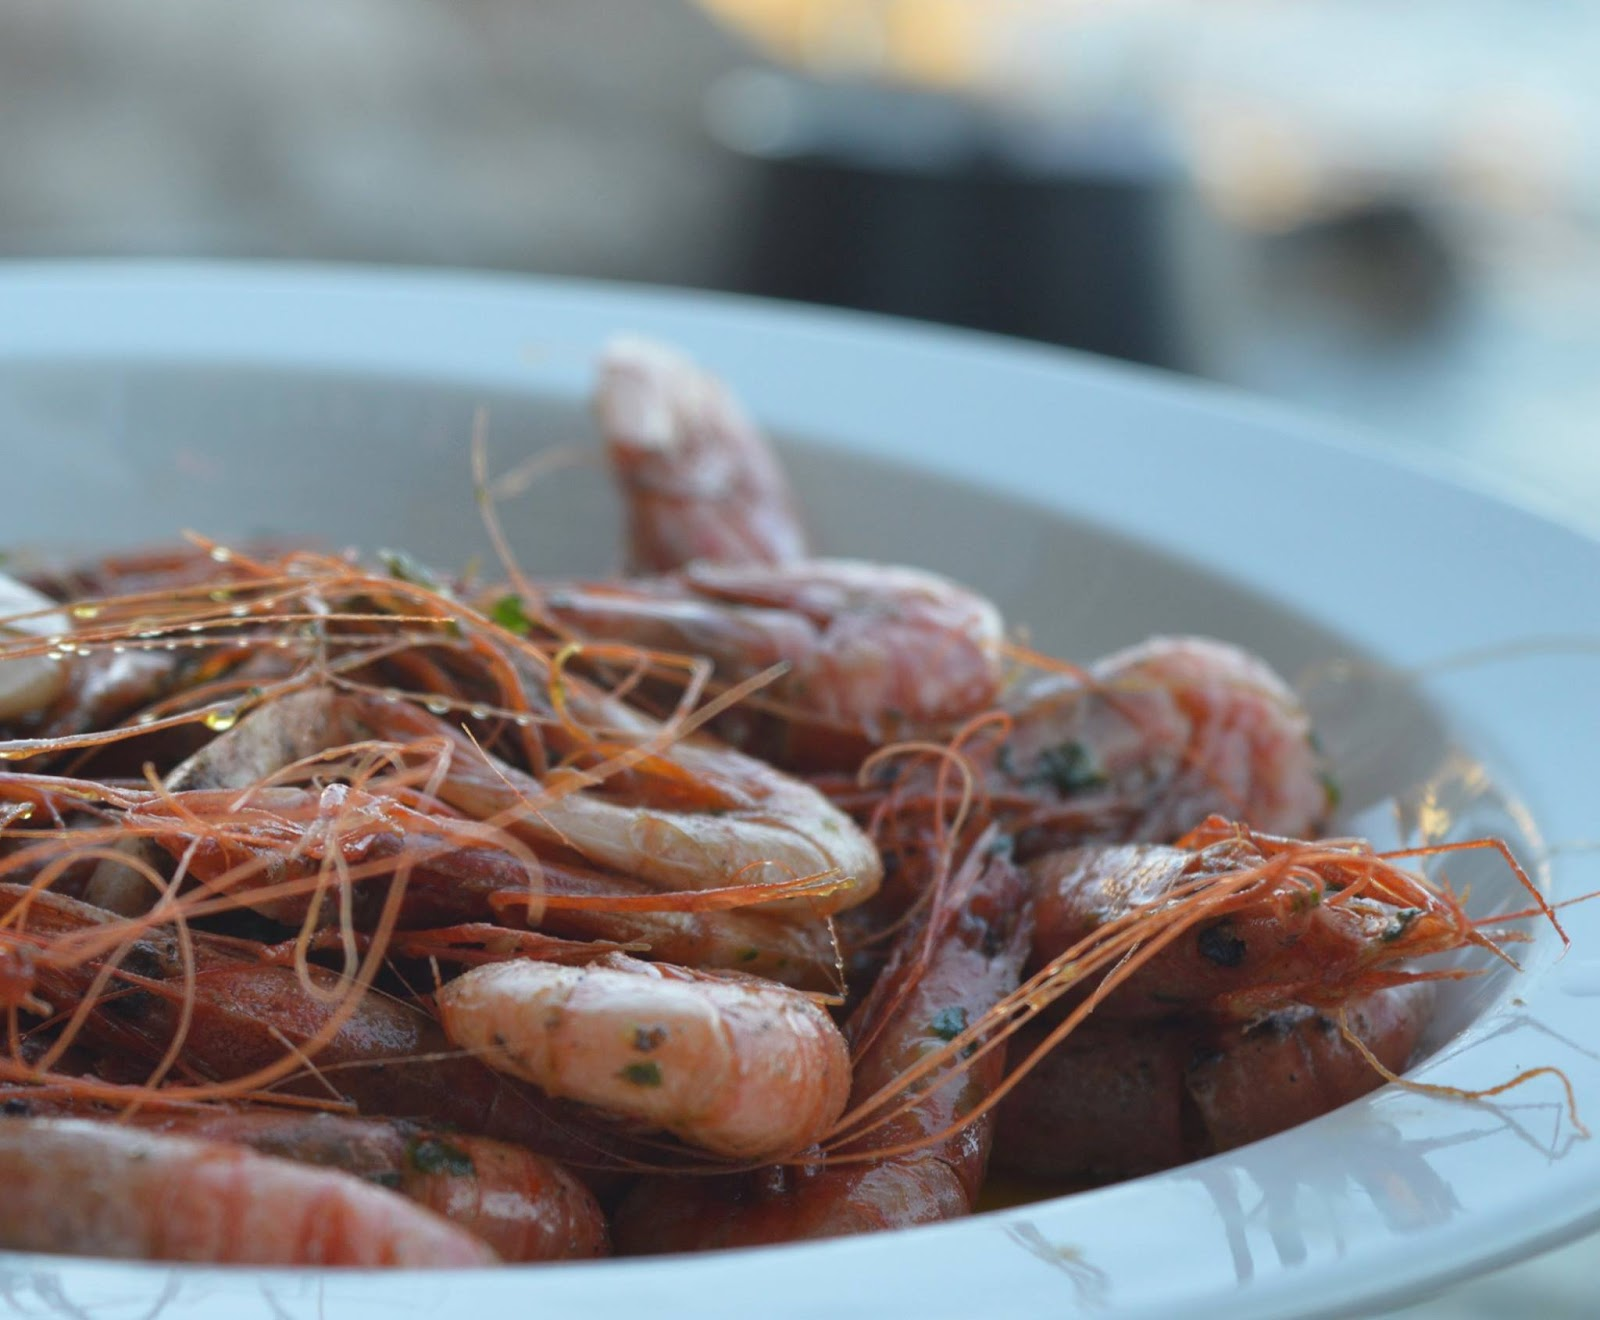 A Dad's Top 10 Holiday Essentials #MarkWarnerDad - Prawns